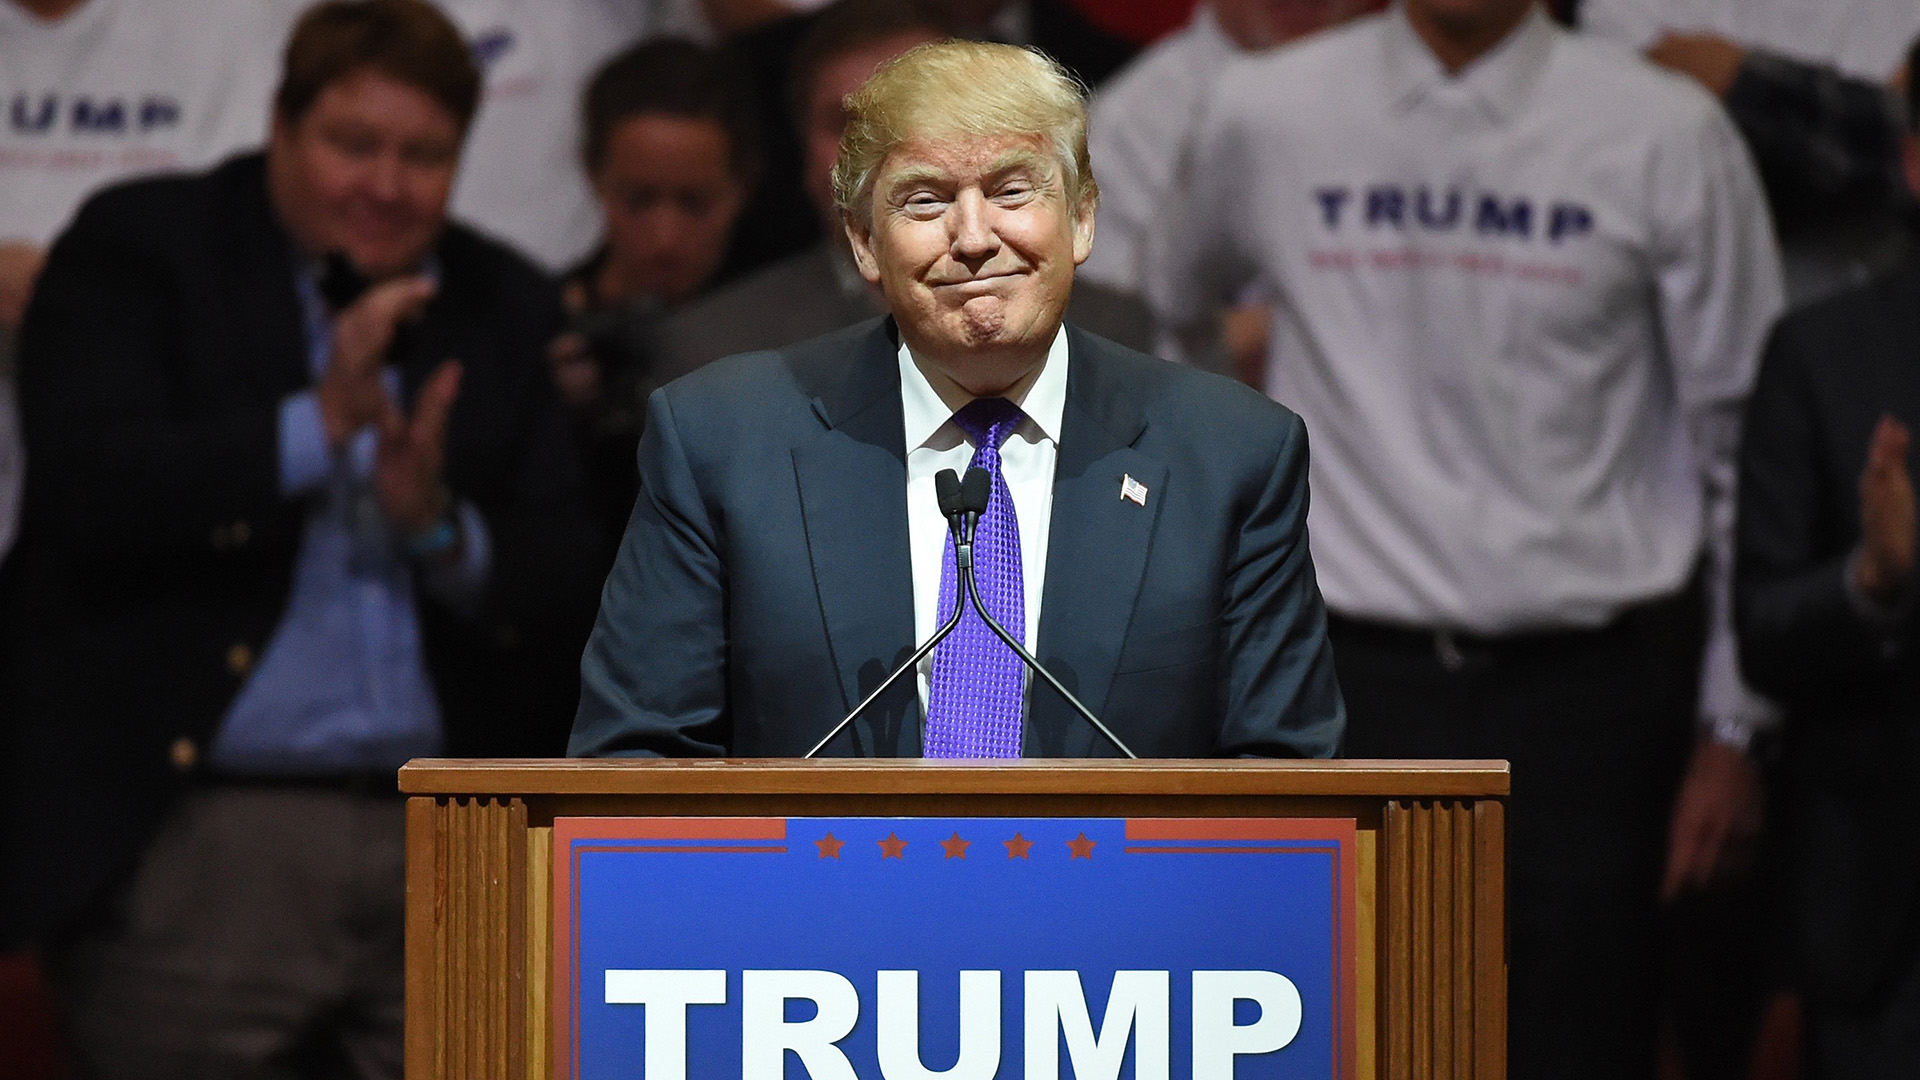 Donald Trump on Nevada Protester: 'I'd Like to Punch Him'